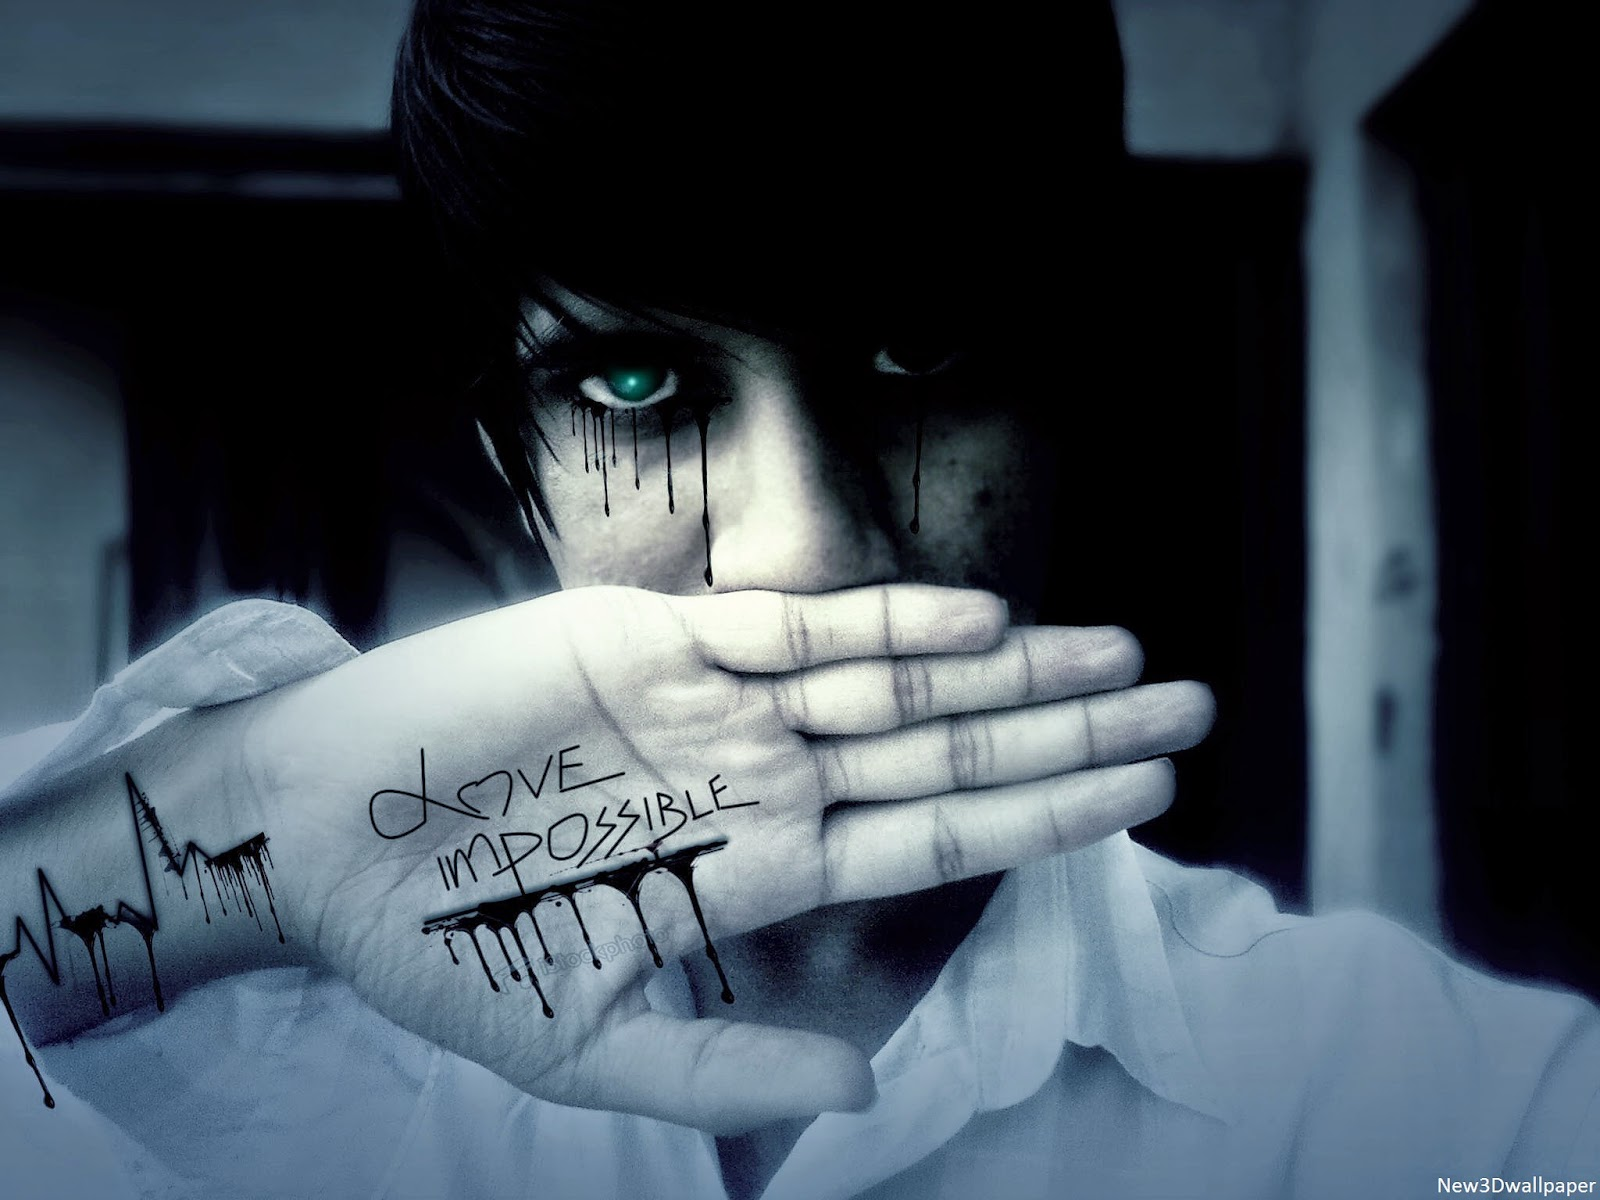 Emo Sad Love Wallpaper : Sad Emo Boys Wallpapers NEW 3D WALLPAPER